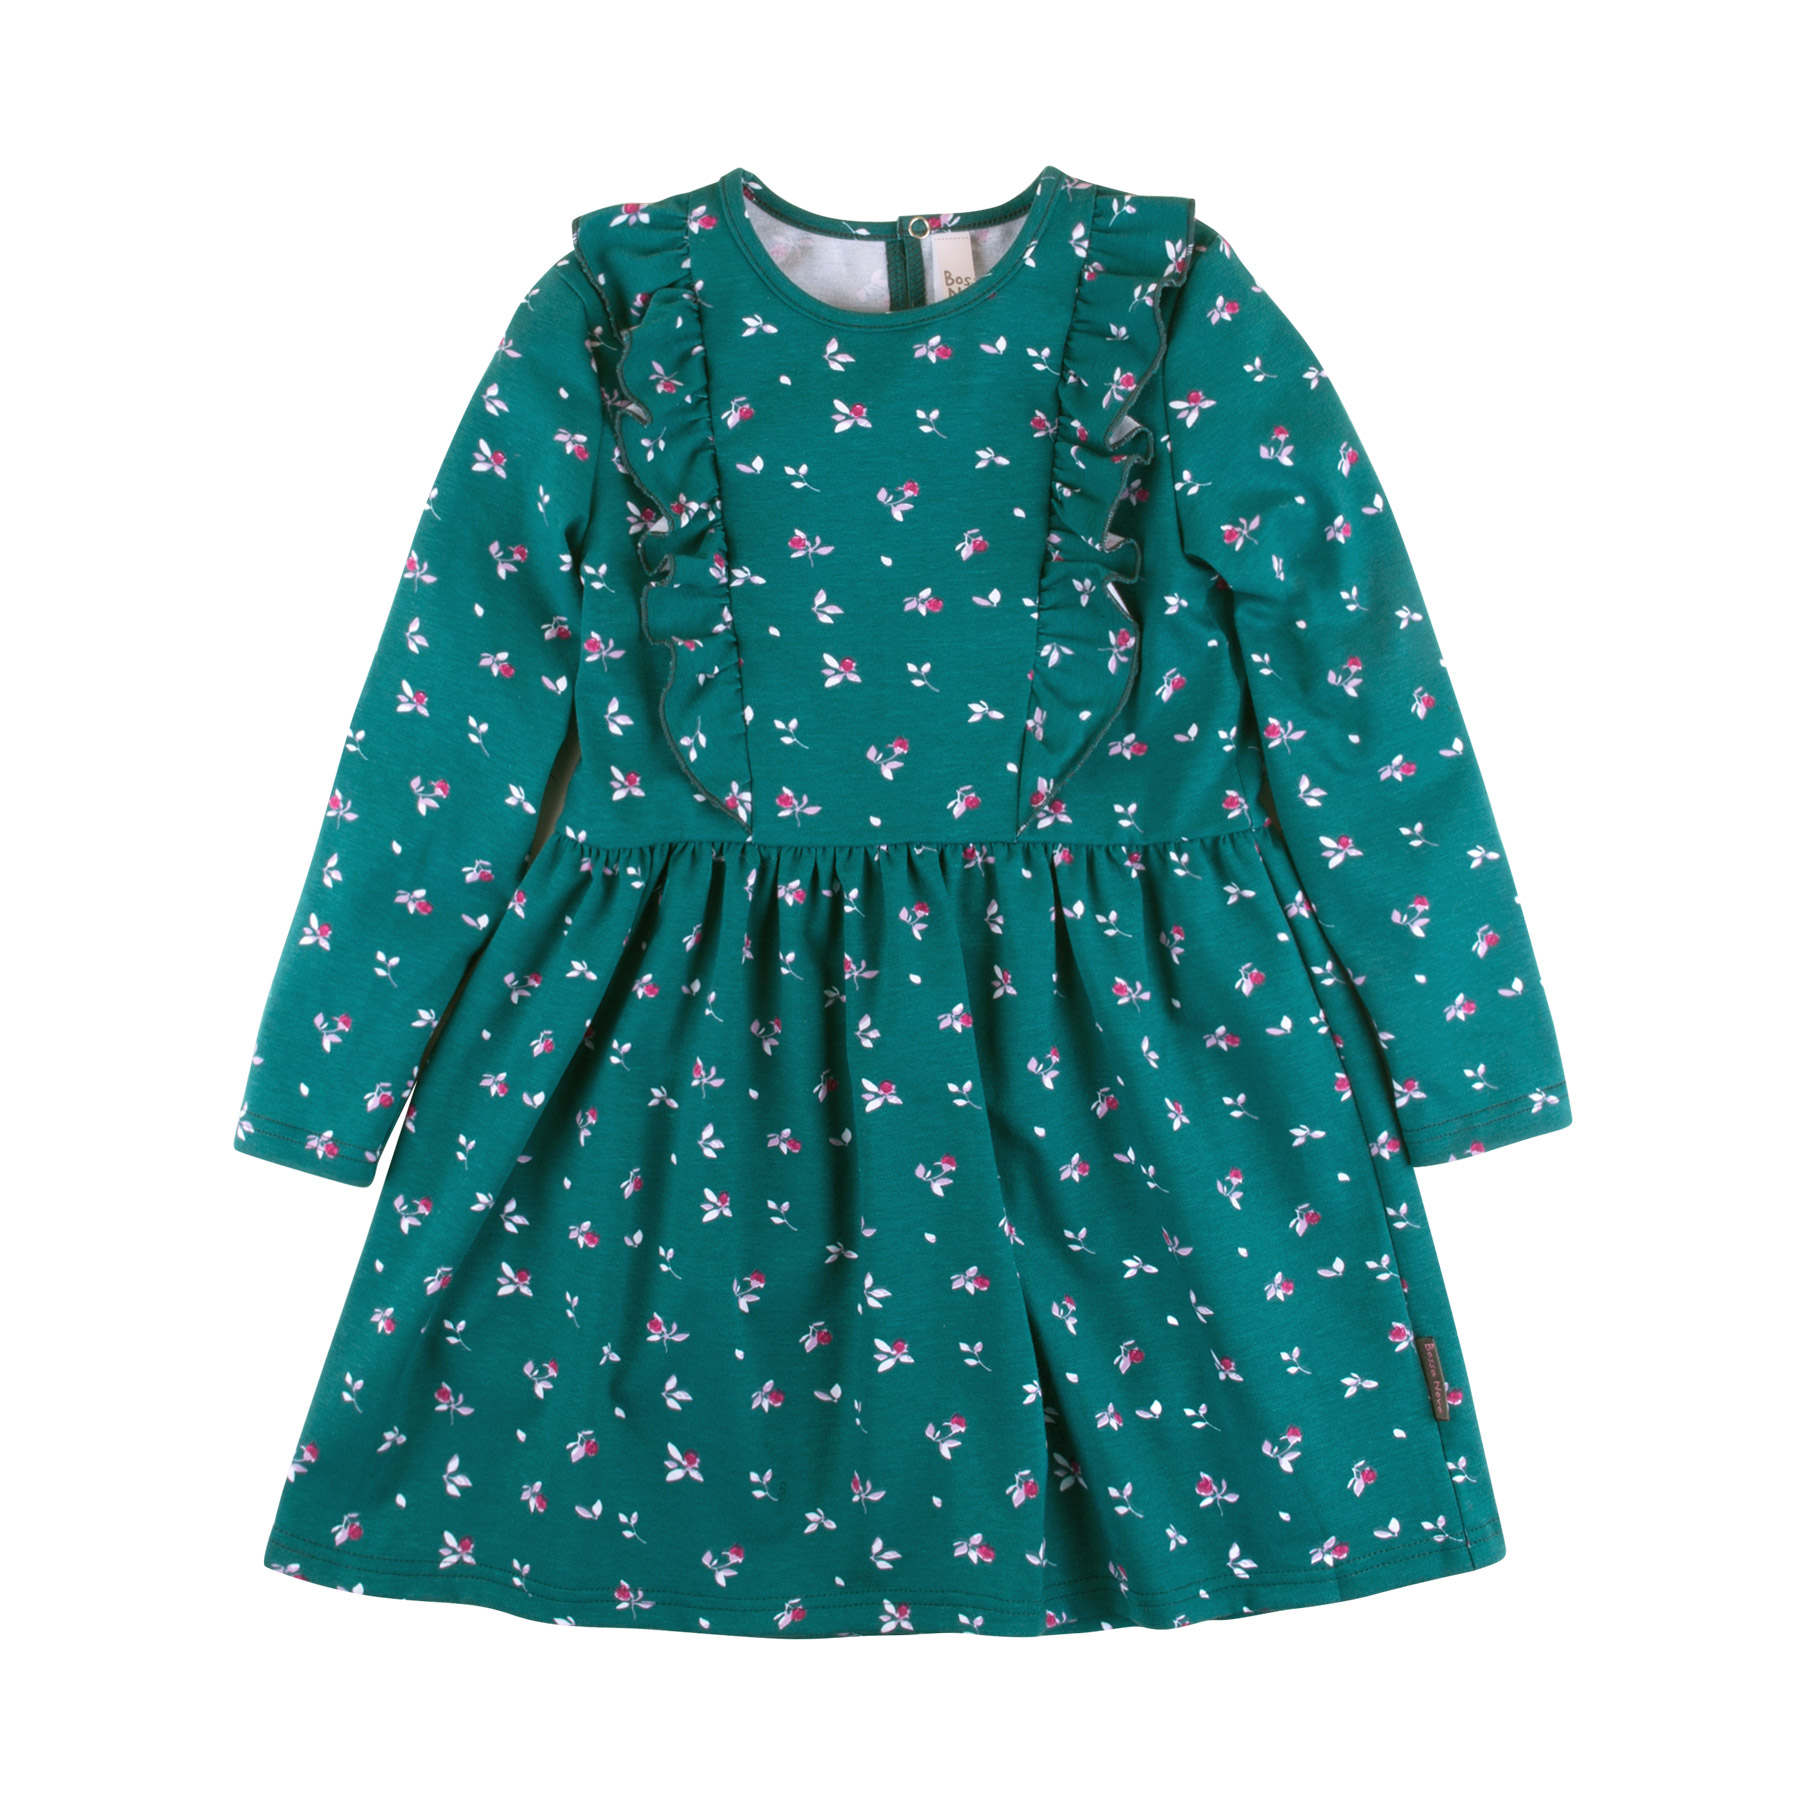 Dresses BOSSA NOVA 148M-187 Maya baby dress for a girl tunic clothes clothing Cotton